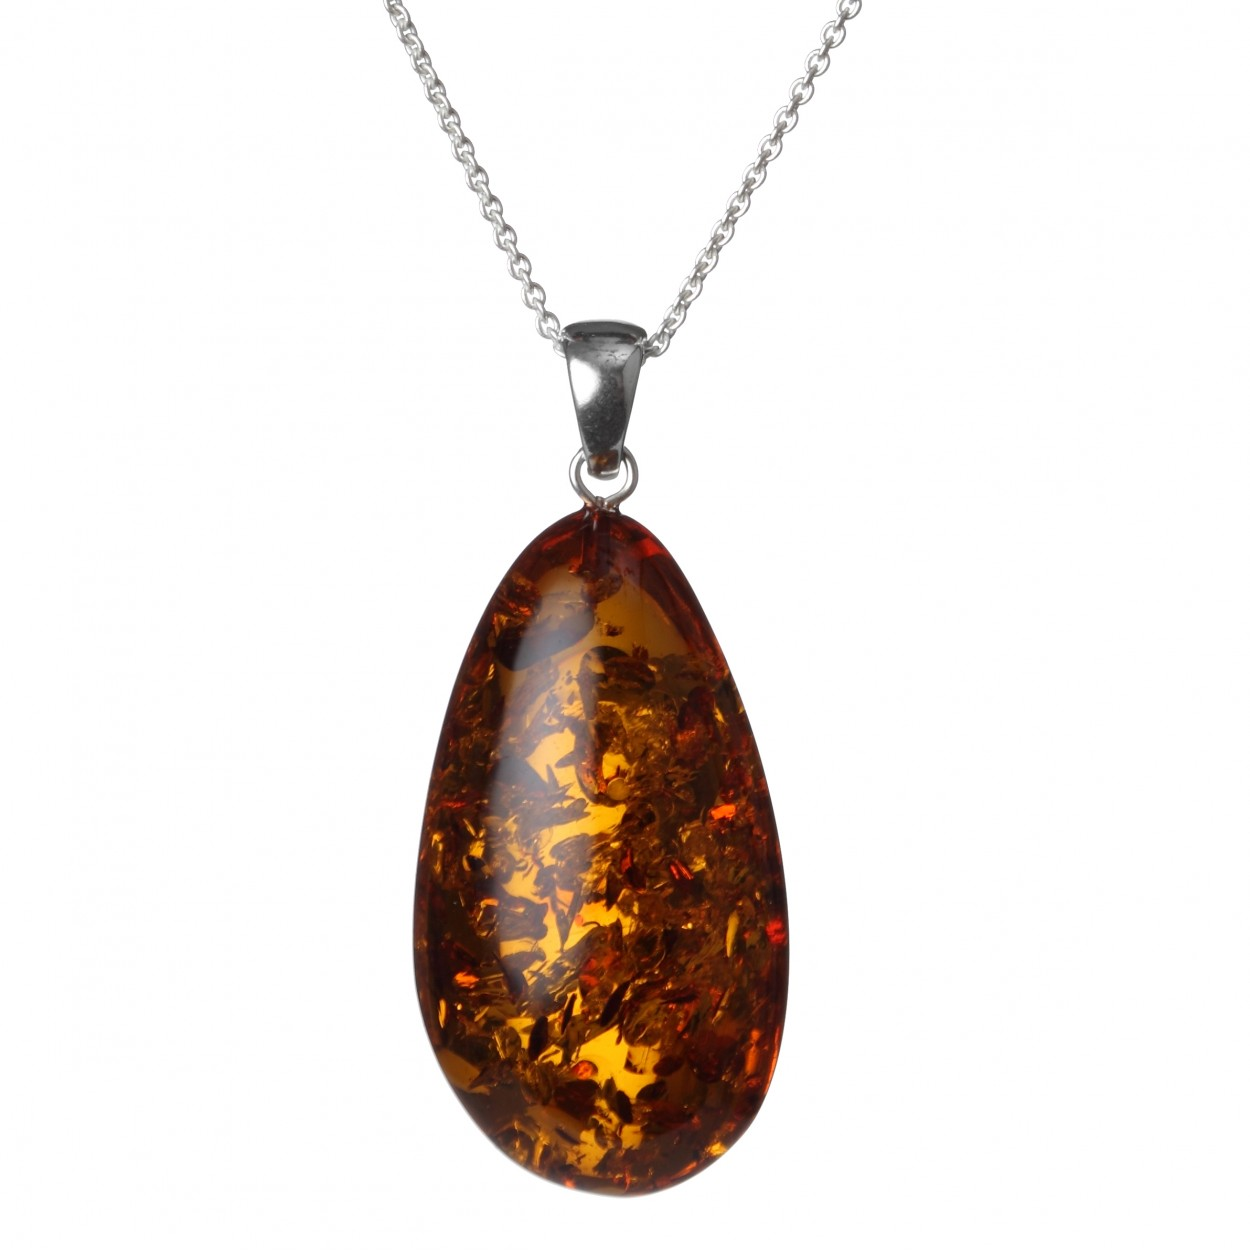 Classic Amber Pendant on the Silver Chain